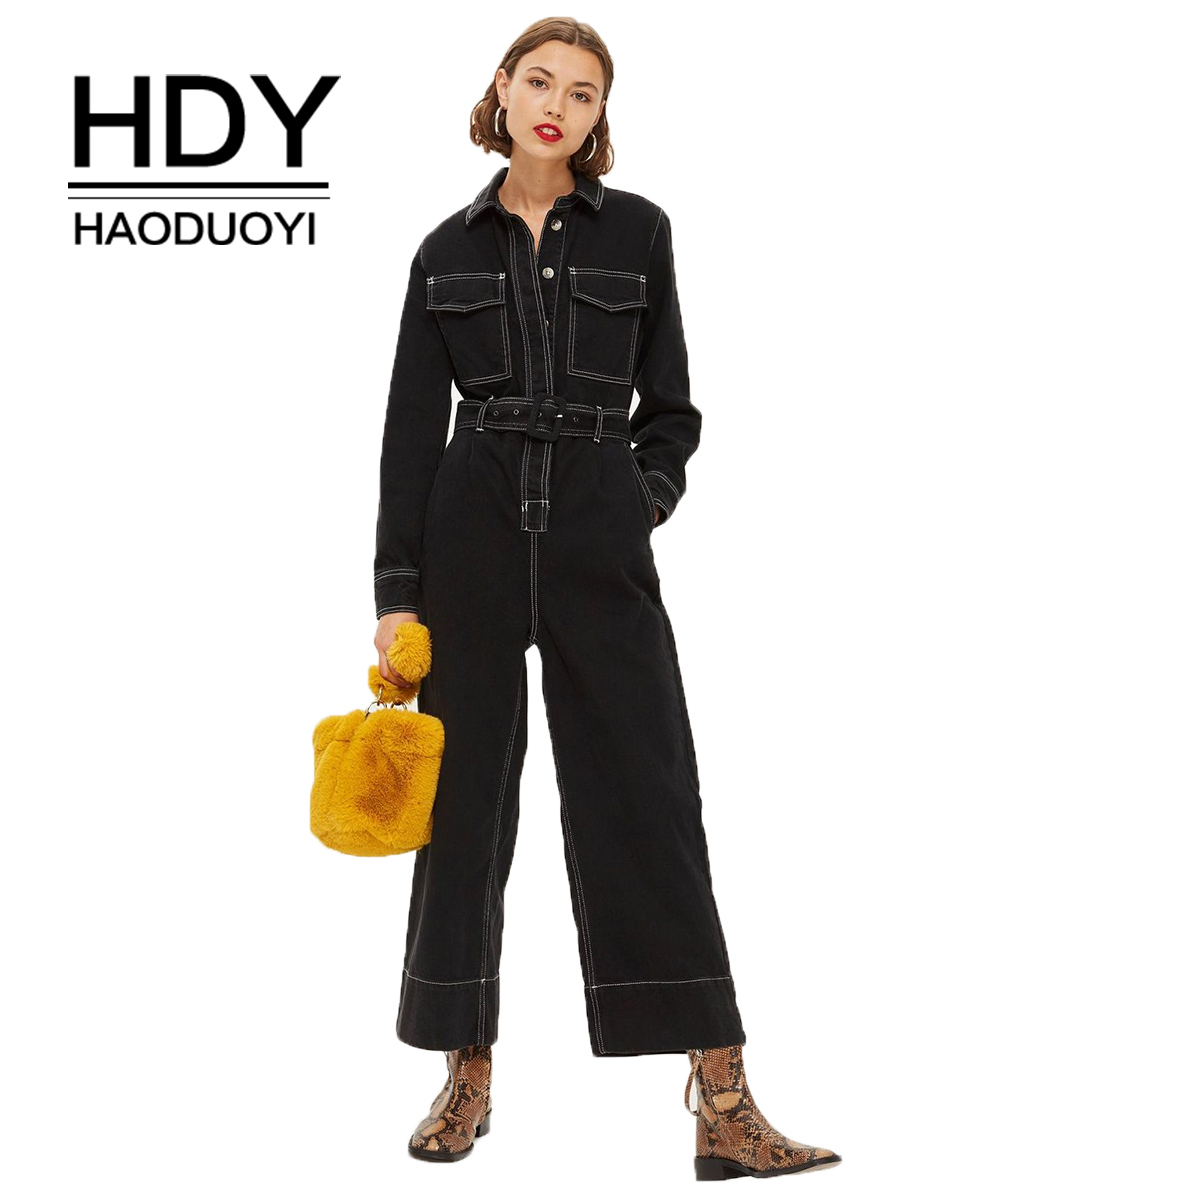 HDY Haoduoyi Simple European and American Handsome Locomotive Wind Pressure Line Open Line Tooling Wind Loose Wide Leg Jumpsuit